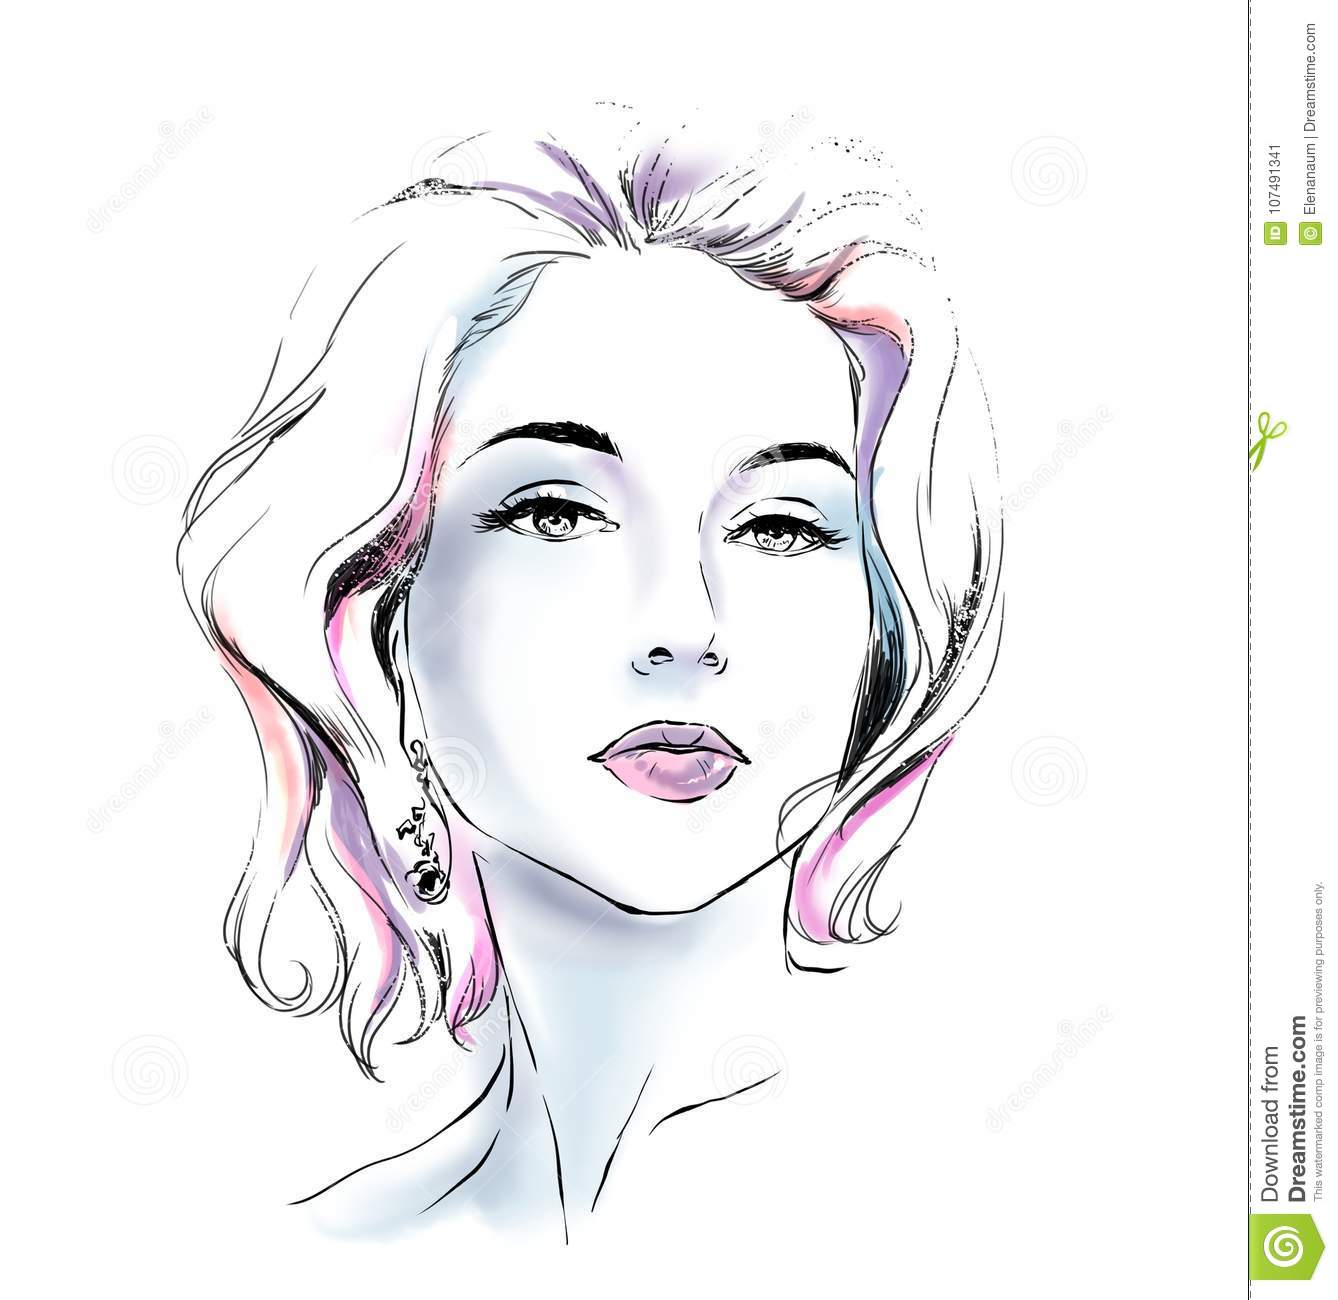 Watercolor portrait of fashion glamour woman young pretty girl with bright color background sketch scribble type